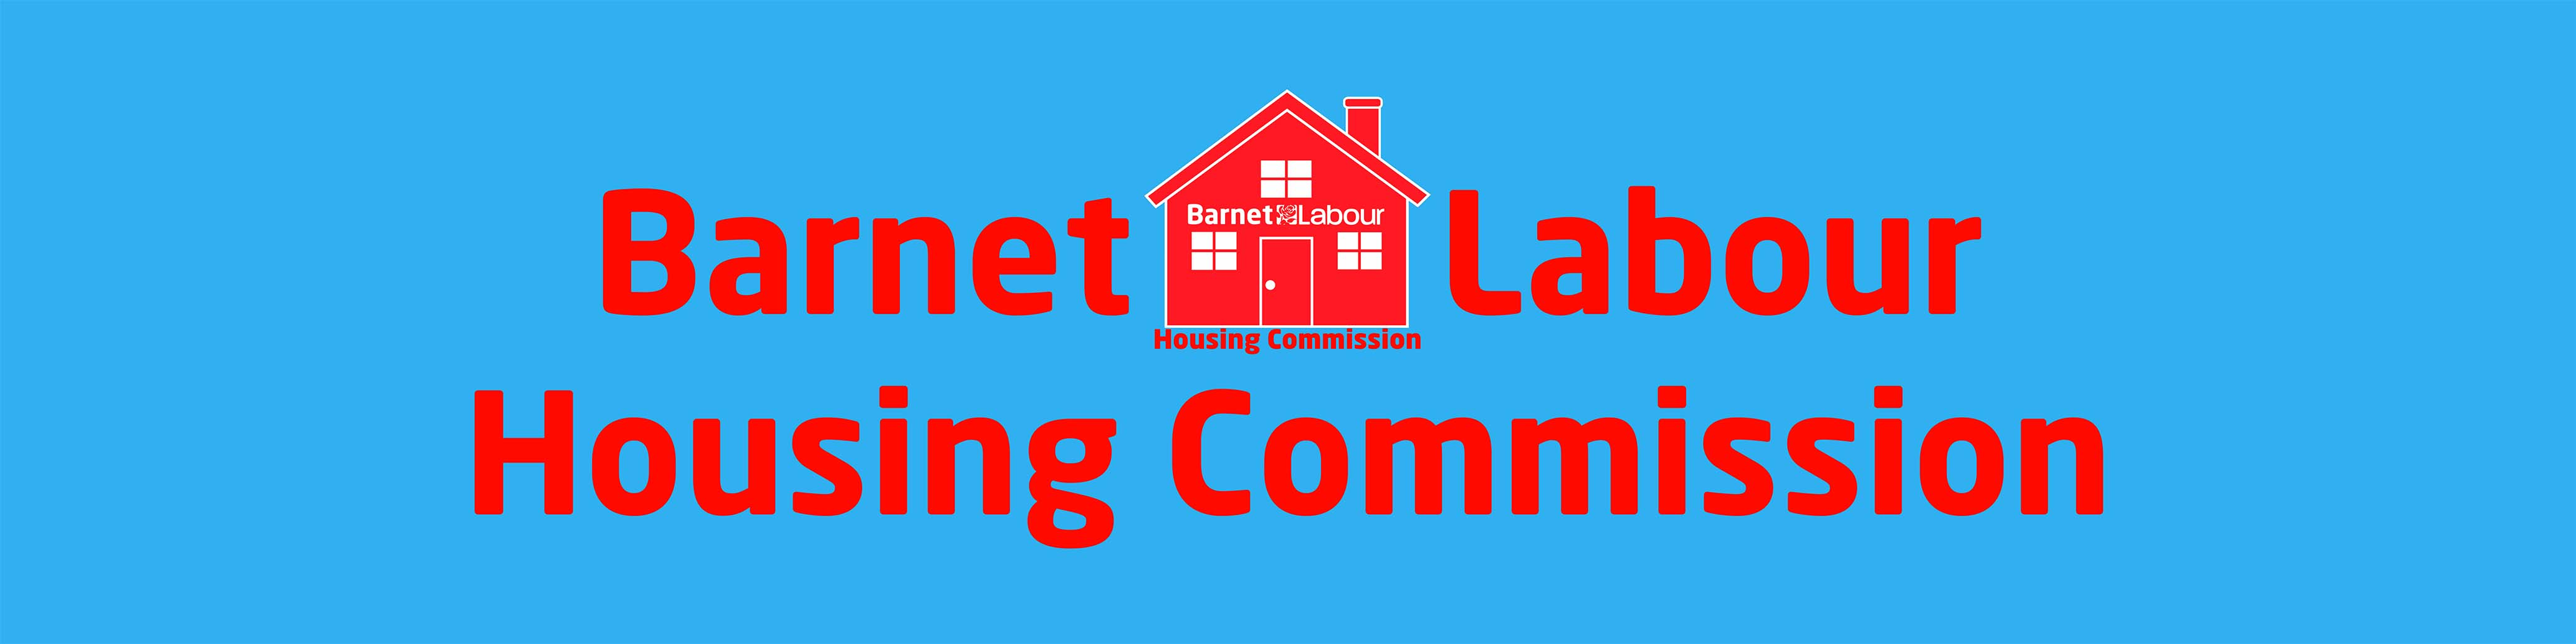 Housing_Commission_Logo_(Web).jpg